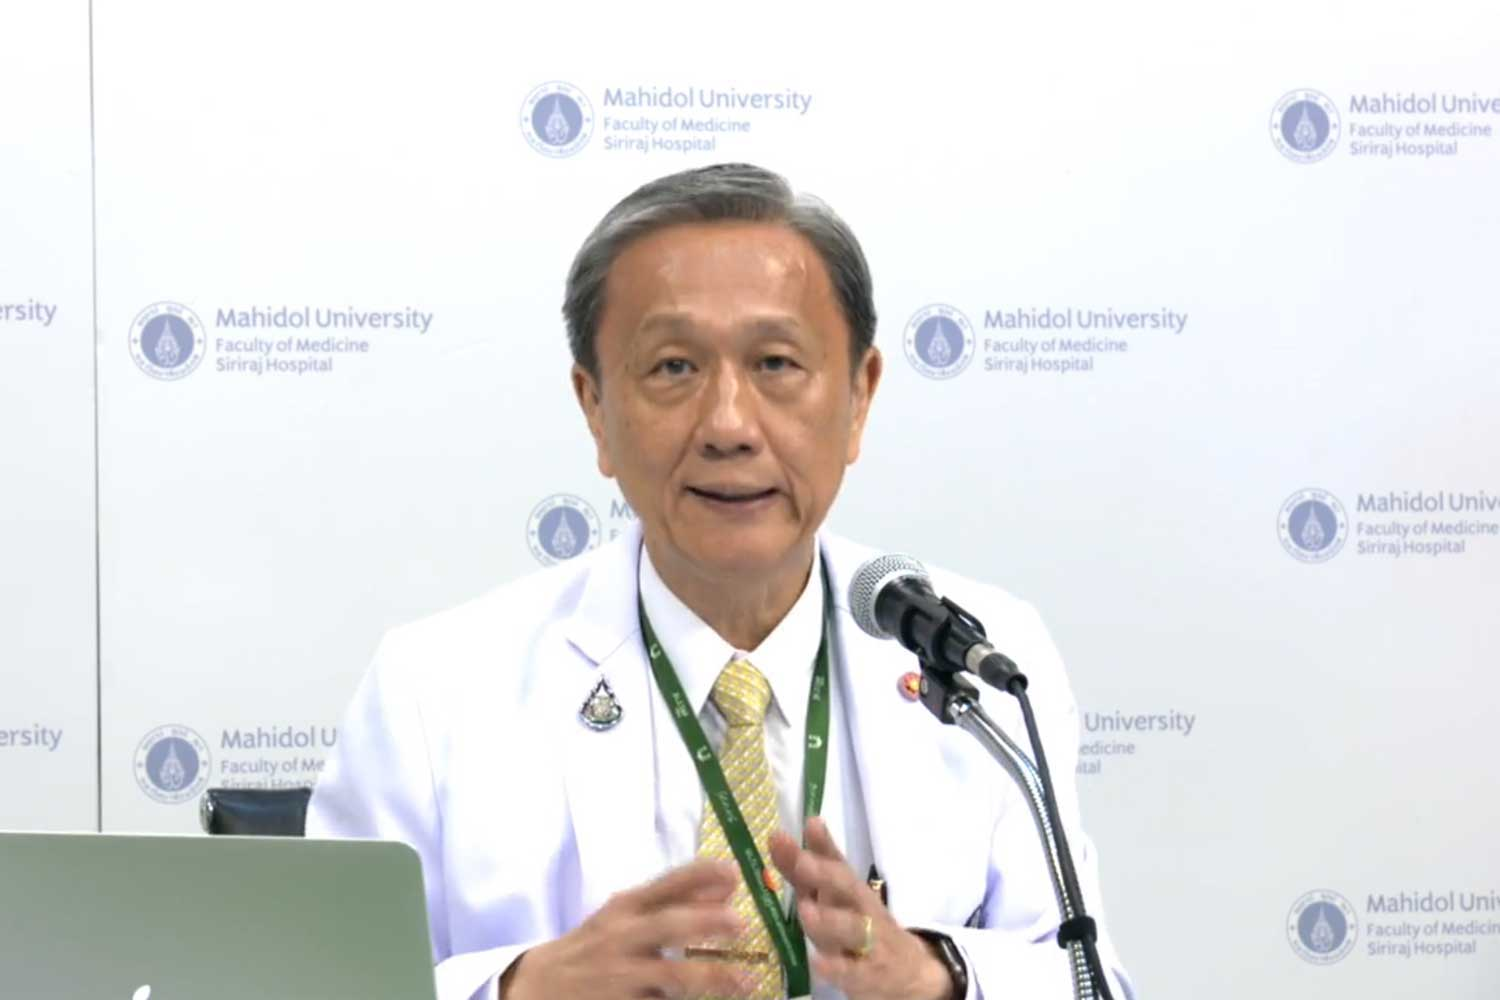 Prof Dr Prasit Watanapa, dean of the faculty of medicine Siriraj Hospital of Mahidol University, warns of the need for strict social-distancing, on the university's online TV channel on Monday. (A screenshot from the channel)